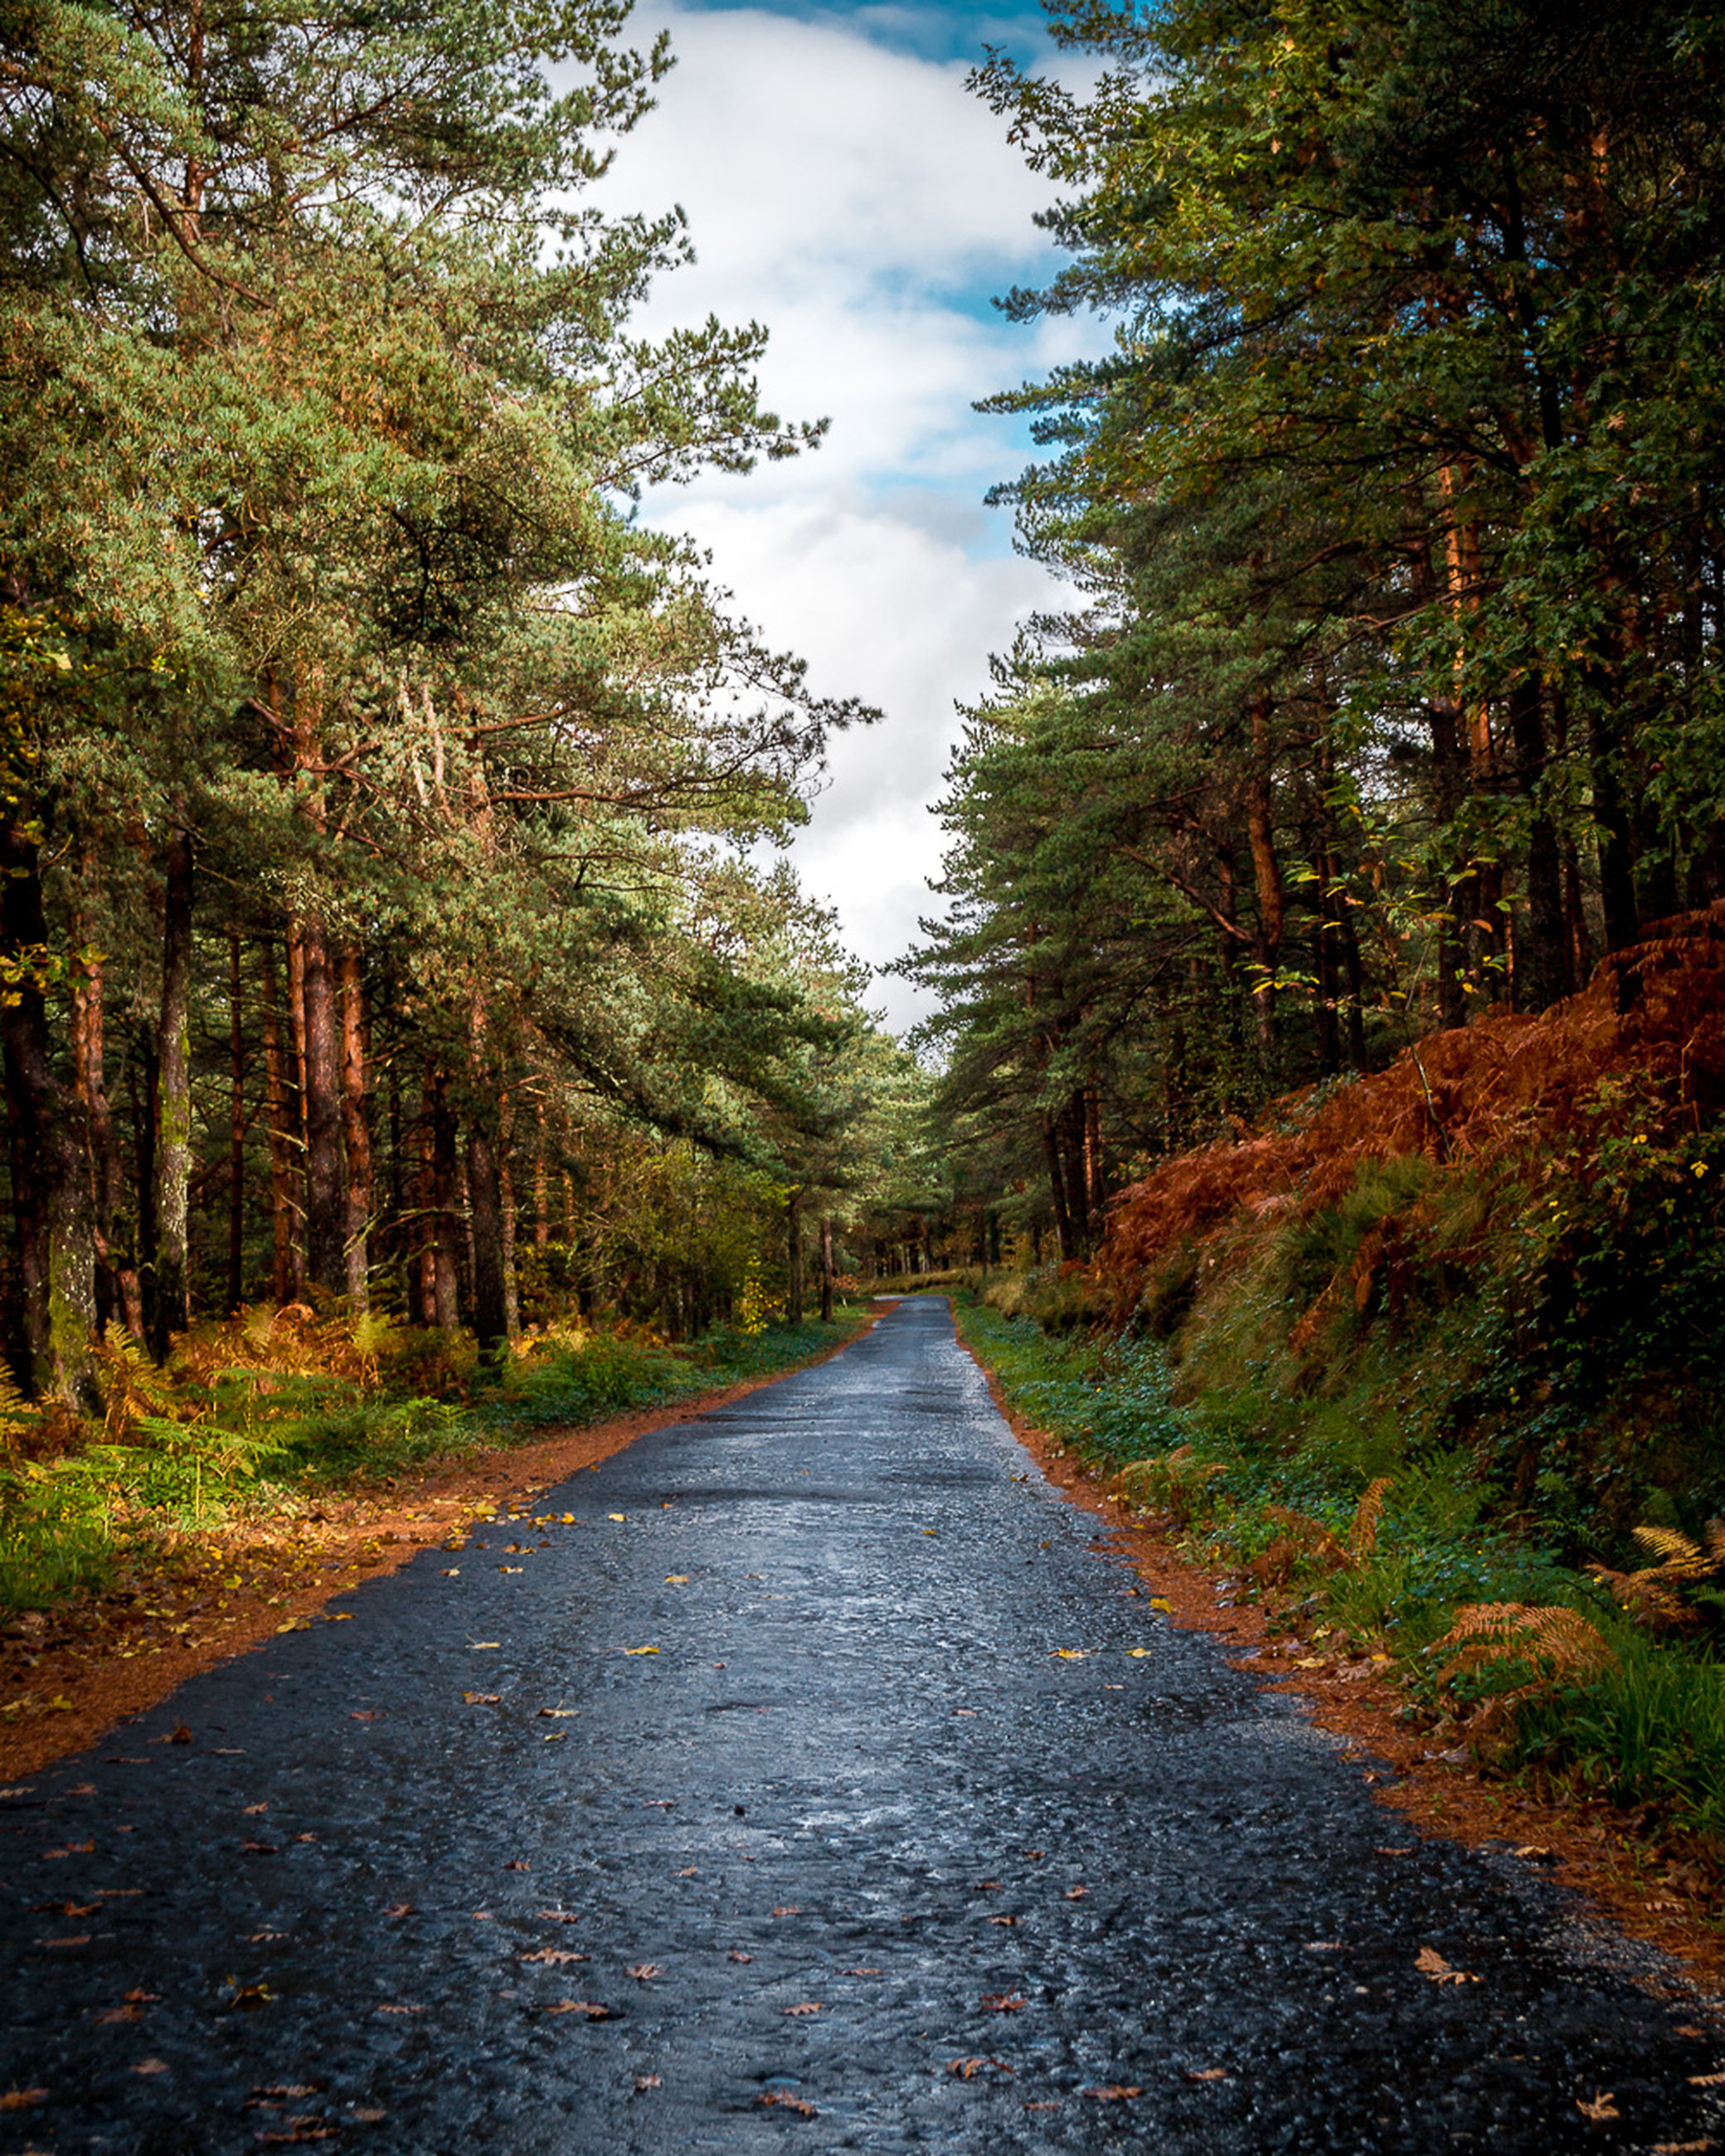 tree, plant, road, the way forward, direction, transportation, forest, nature, no people, land, growth, day, tranquility, diminishing perspective, sky, non-urban scene, tranquil scene, beauty in nature, dirt, scenics - nature, outdoors, change, woodland, treelined